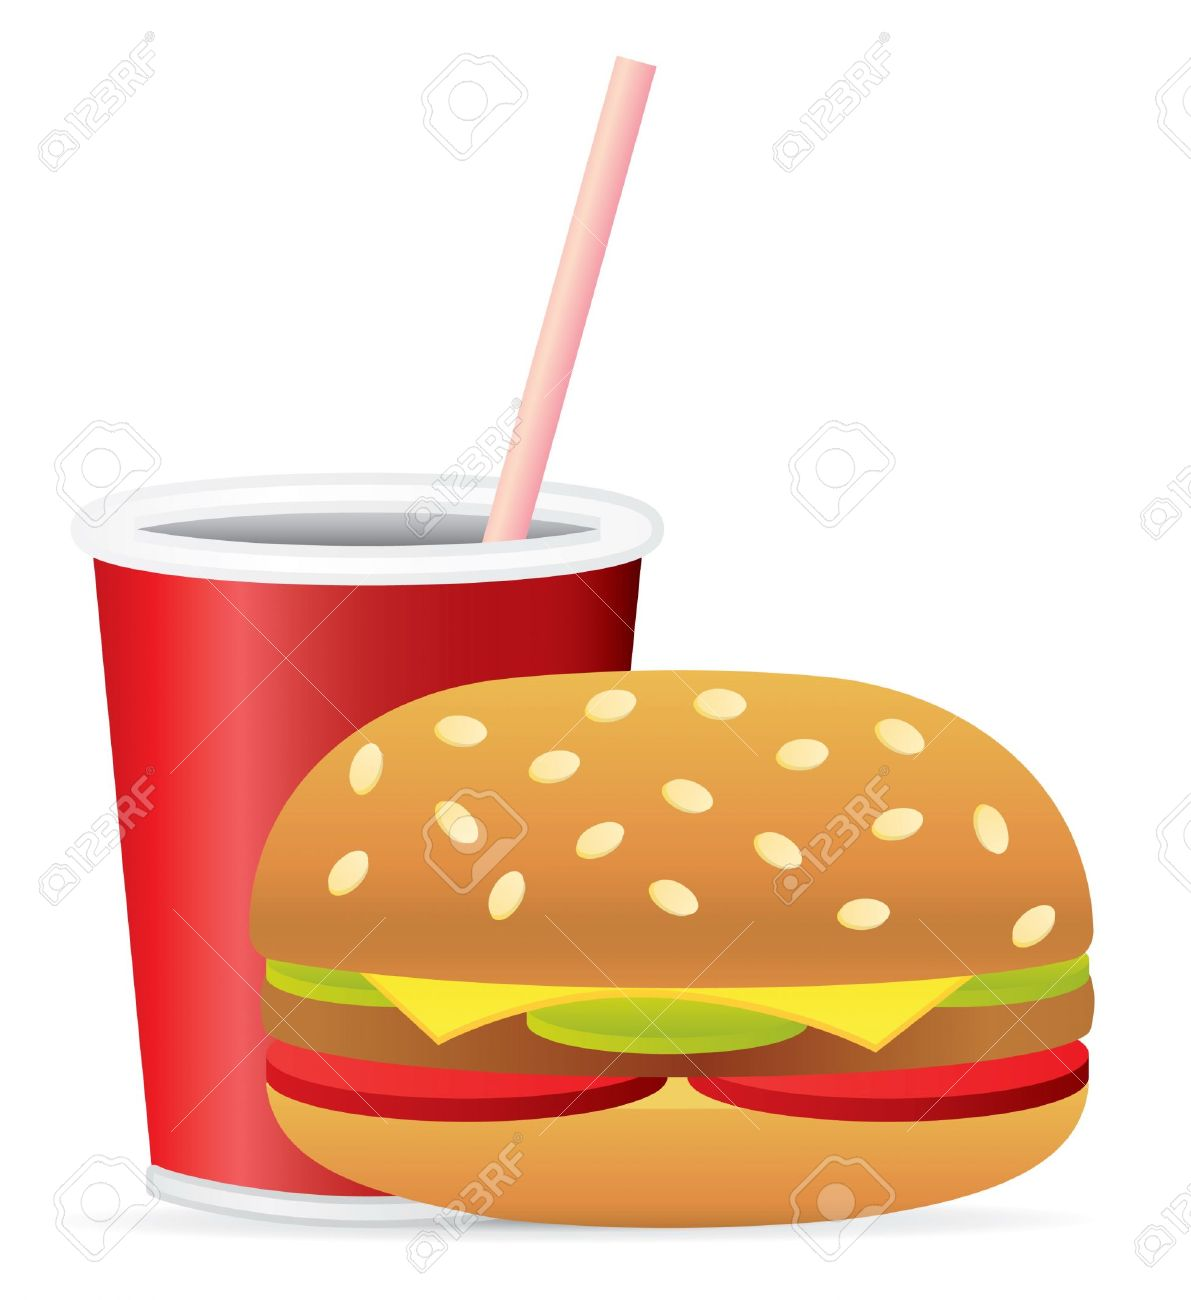 Fast food images clip art.